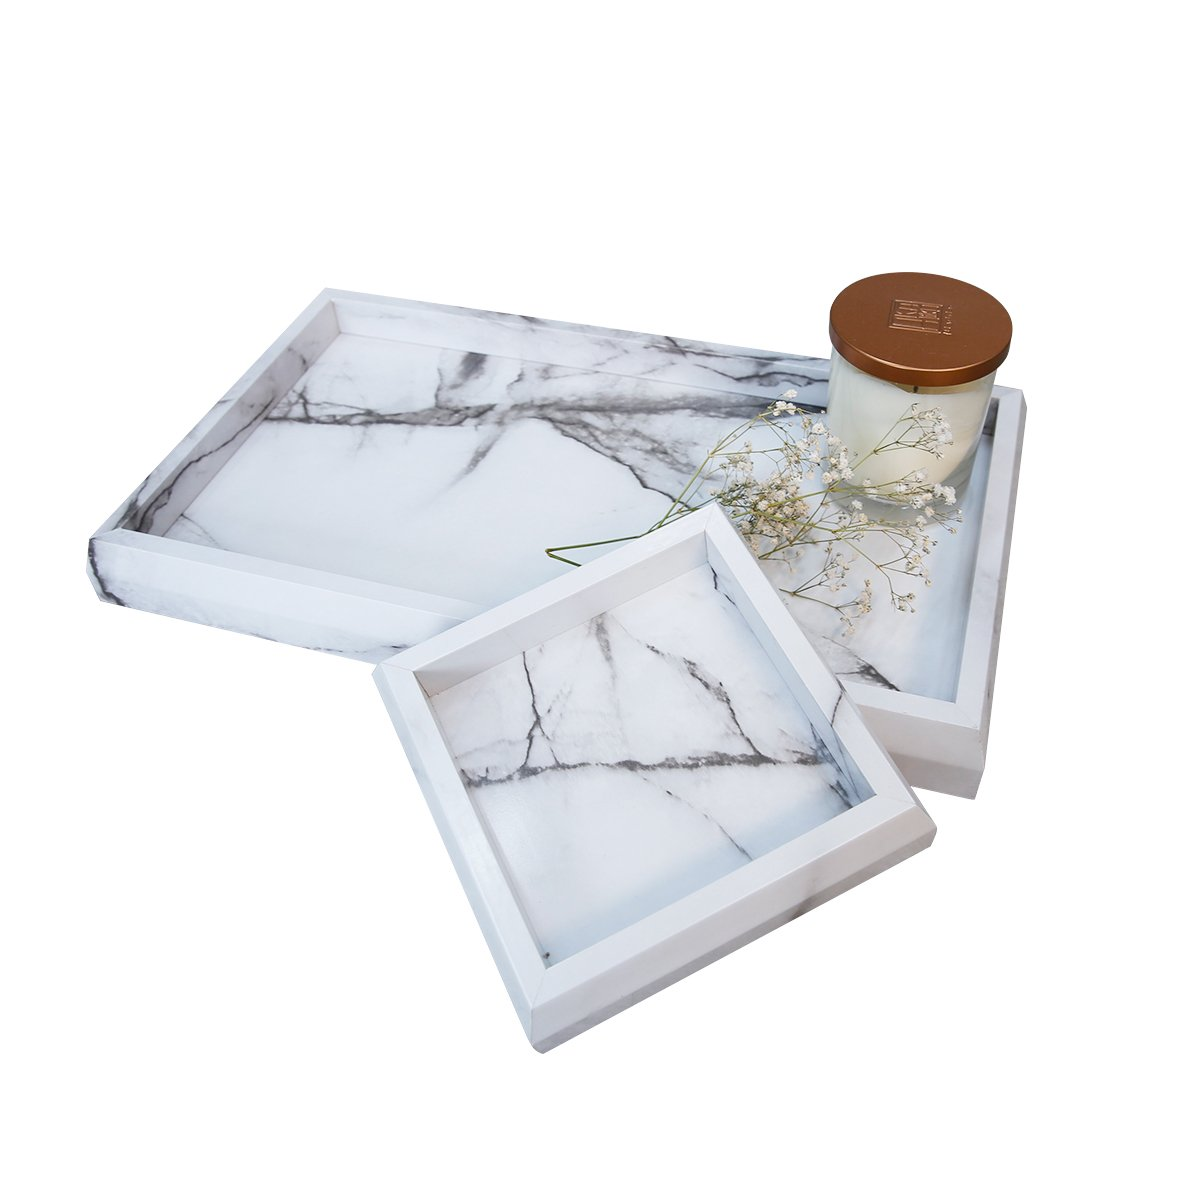 Roomfitters Marble Print Vanity Tray Set, Best Bathroom Catchall Trays for Jewelry Perfume, Upgraded Version Water Resistant, Anti-Scratch by Roomfitters